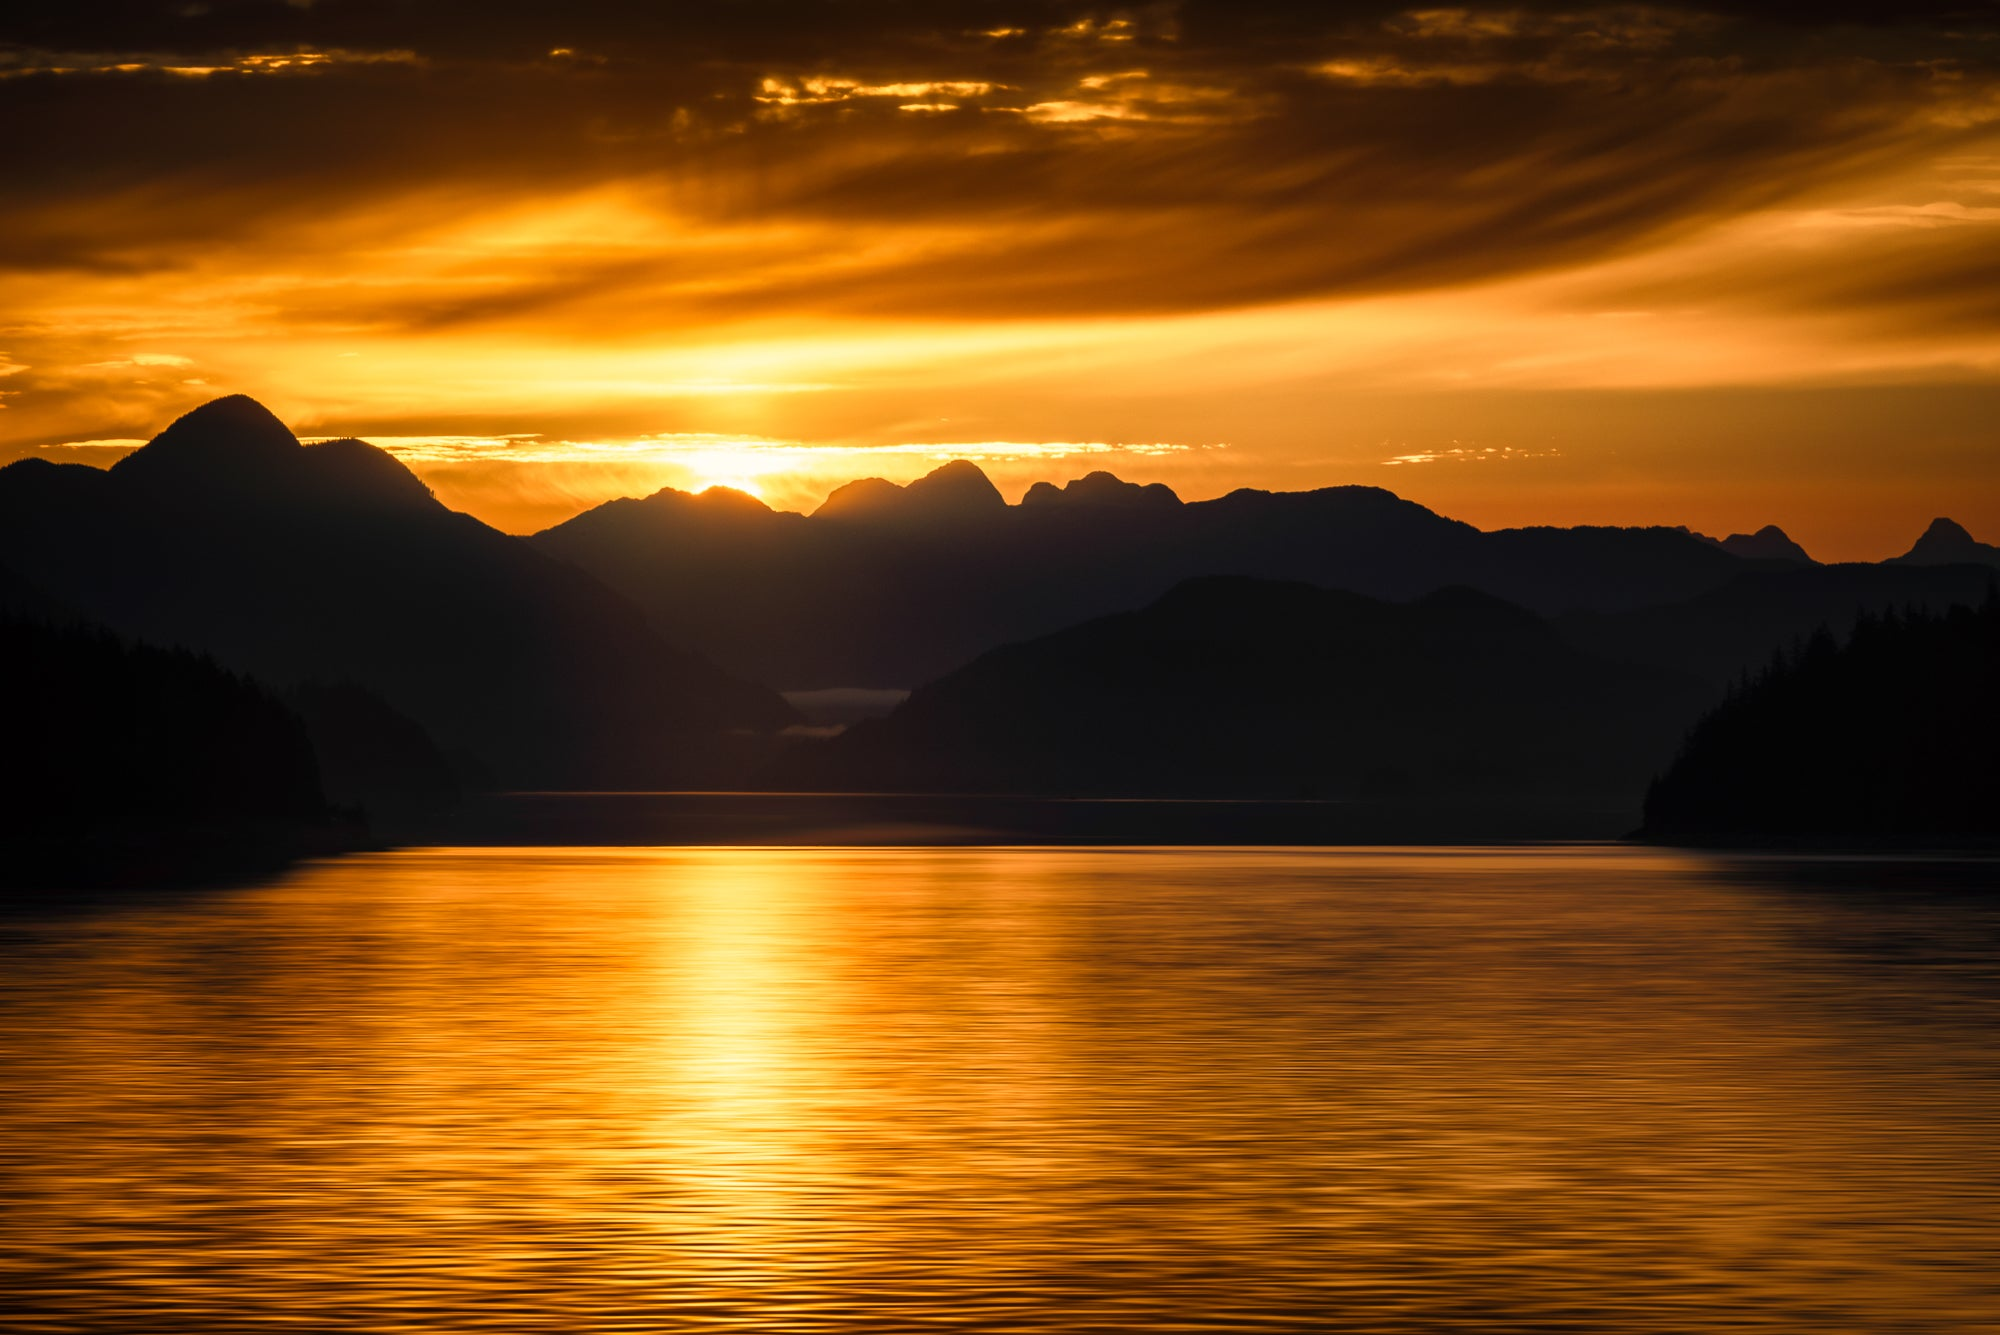 Sunset-Alaska-Coastline-Golden-USA-Mark-Hannah-Photography